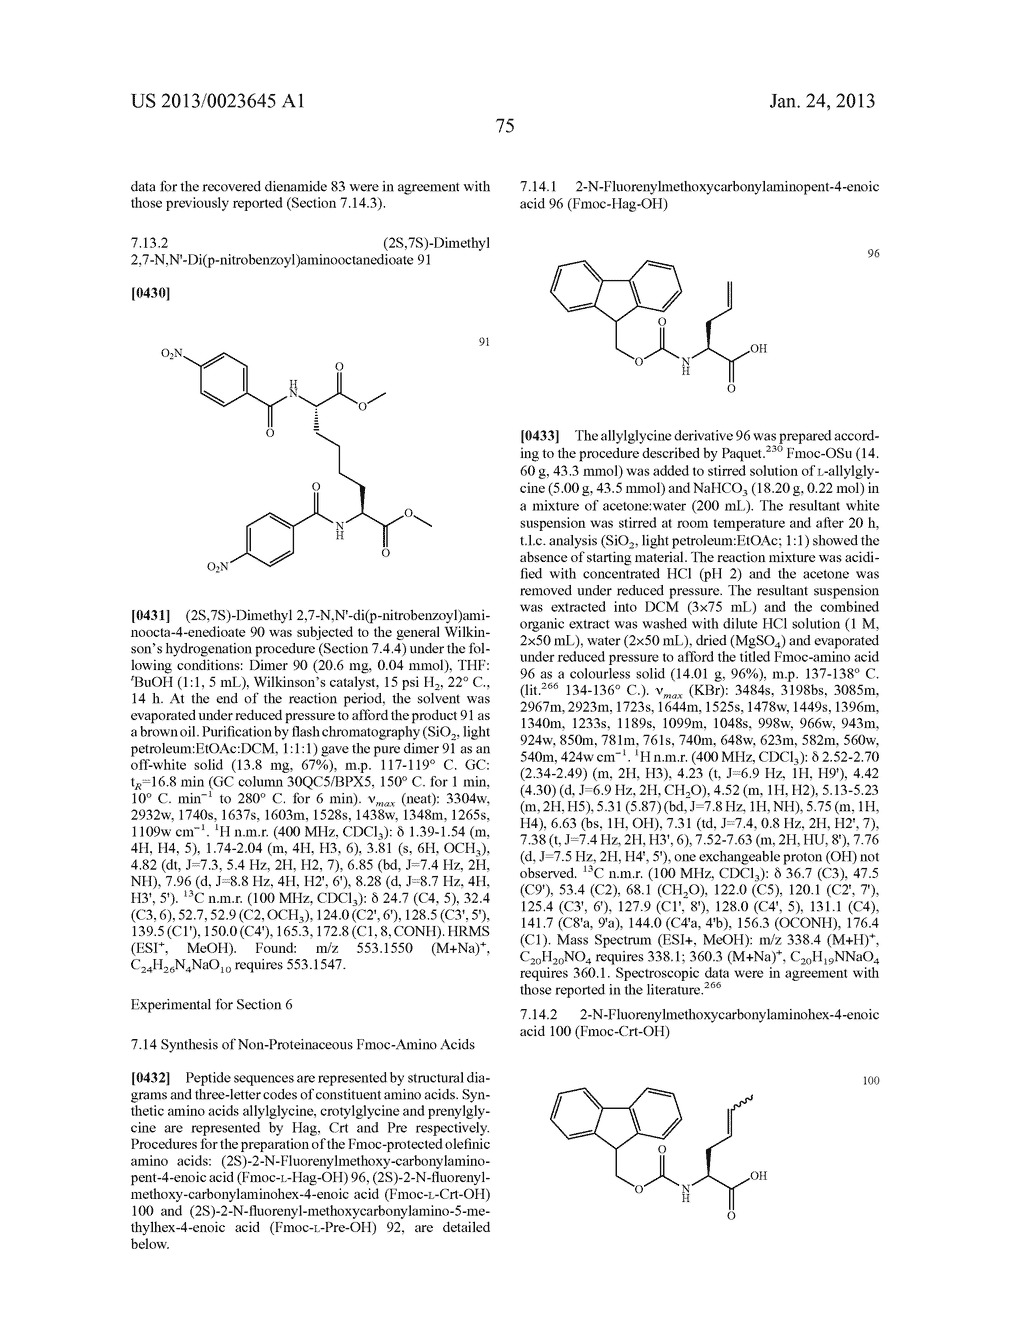 METHODS FOR THE SYNTHESIS OF DICARBA BRIDGES IN ORGANIC COMPOUNDS - diagram, schematic, and image 80